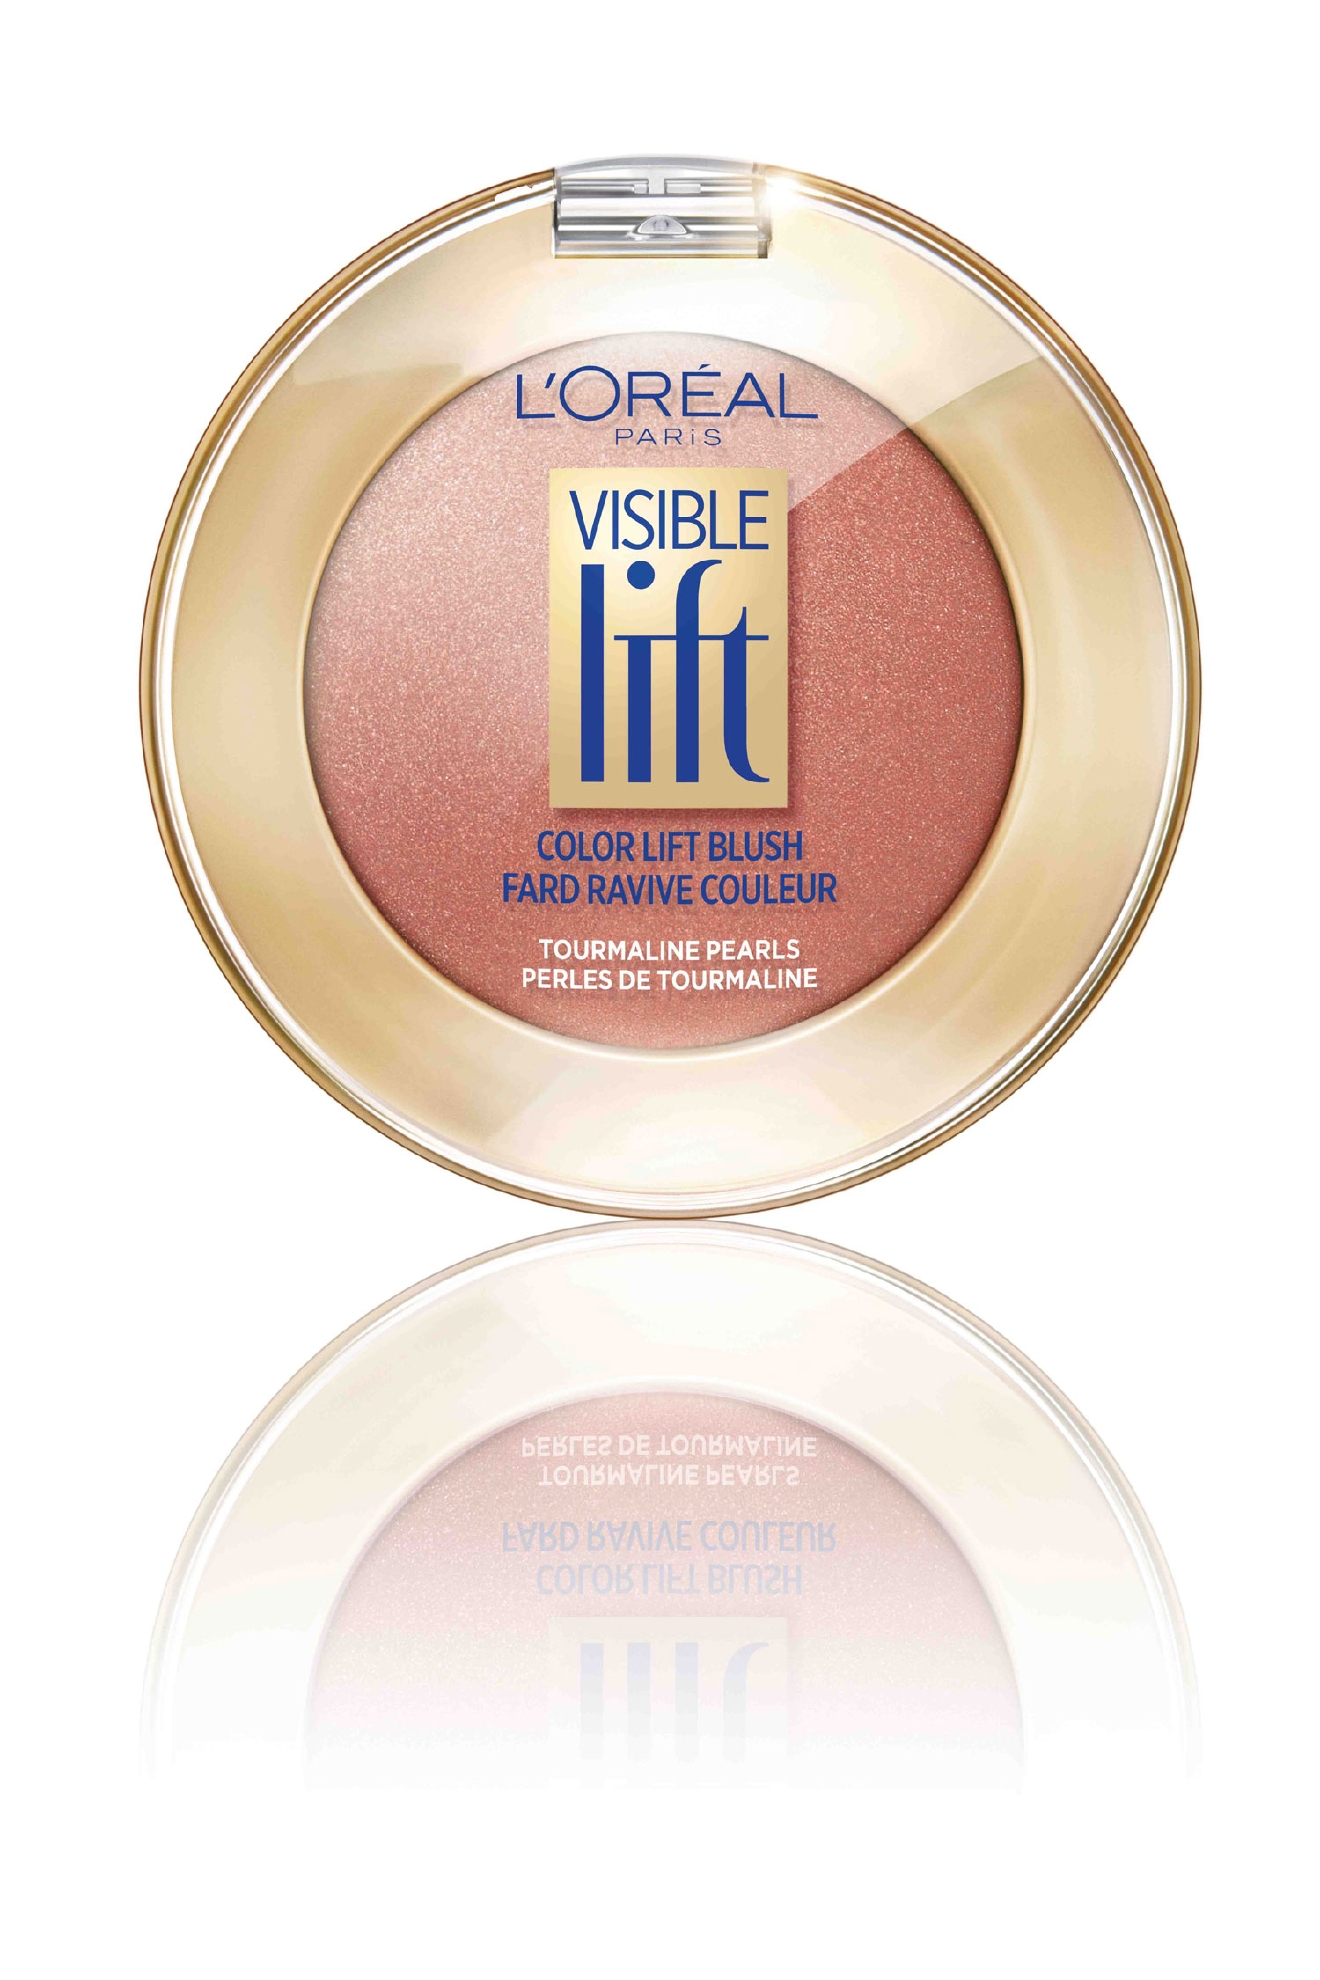 L'oreal Visible Lift Color Blush in nude ($13).  This is a super pretty/subtle blush.  When it comes to your makeup bag, drugstore beauty is, well, a beautiful thing. From the ultimate voluminous mascara to lip balms and dry shampoo, we've rounded up our favorite products that won't break the bank. (Image: Target)